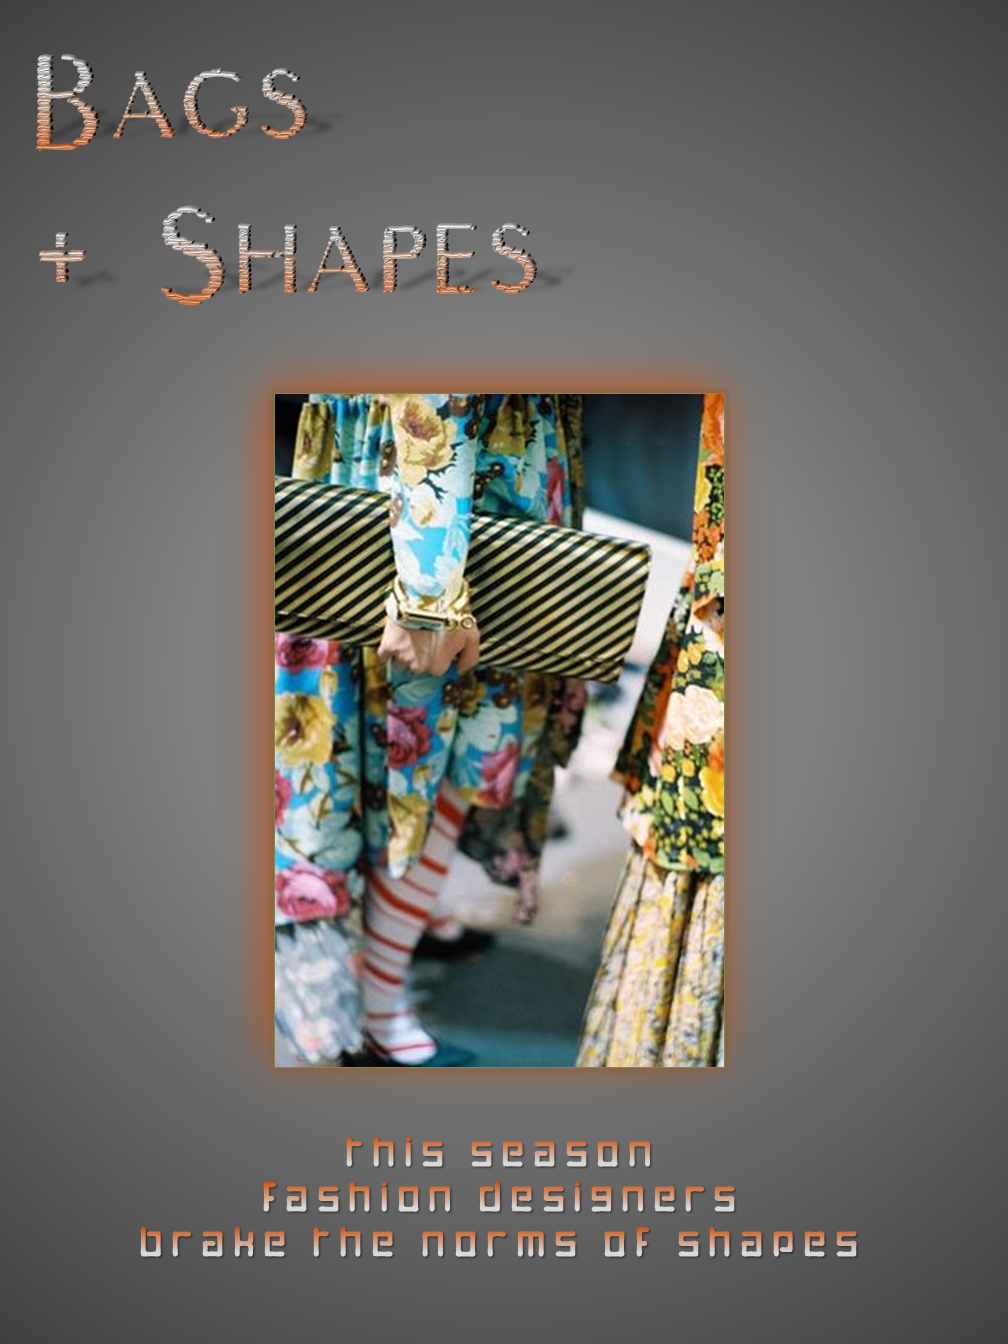 Bags & Shapes